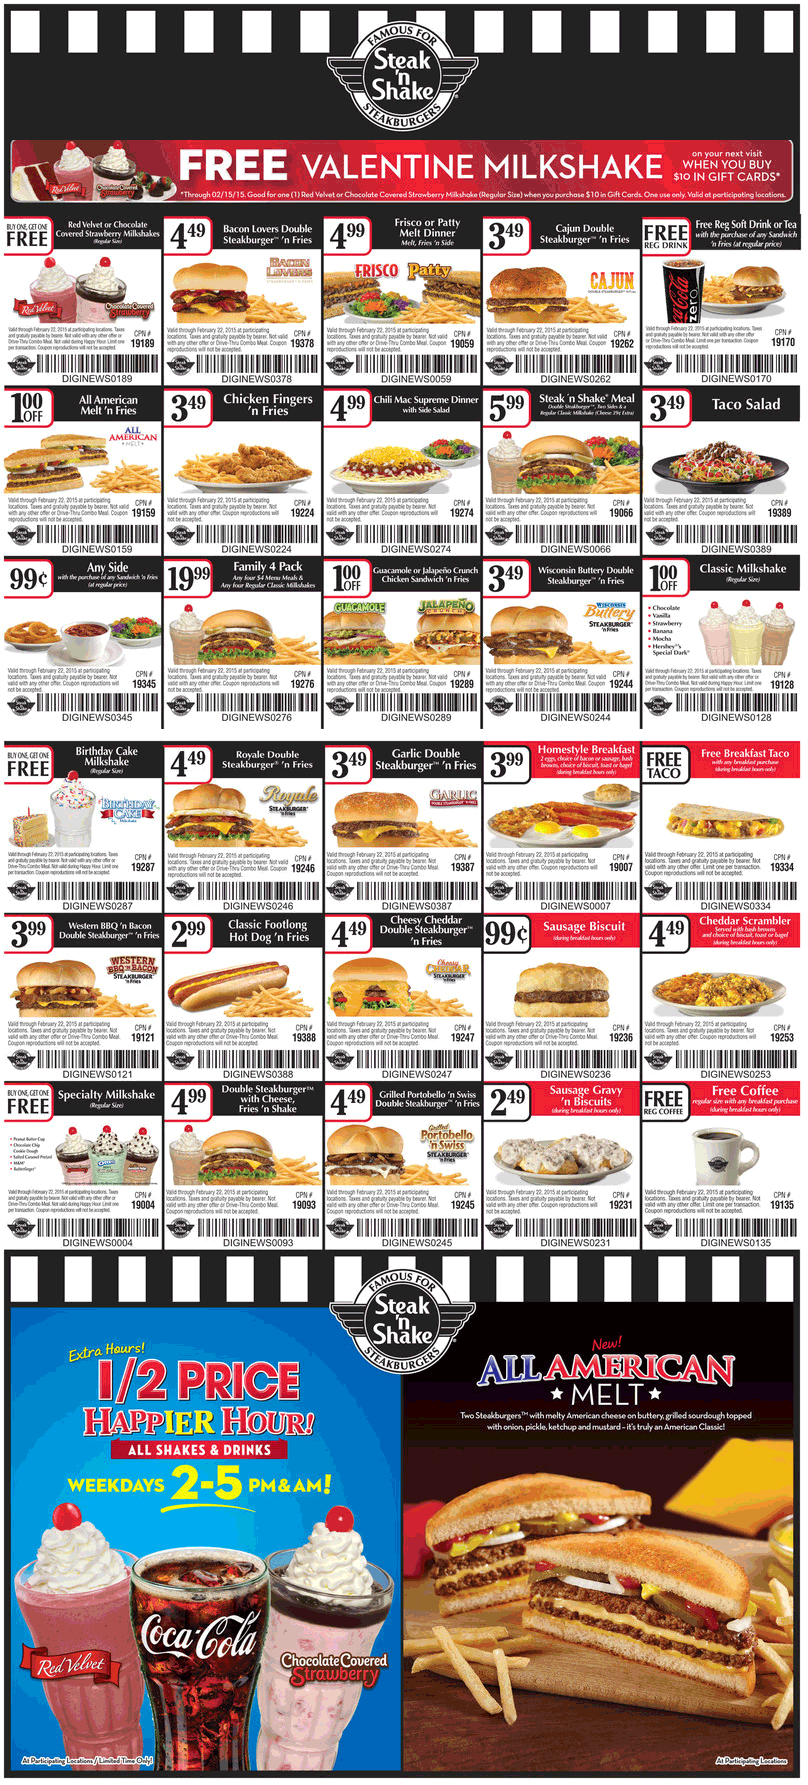 Steak n Shake Coupon October 2016 Second shake free, free coffee & more at Steak n Shake restaurants